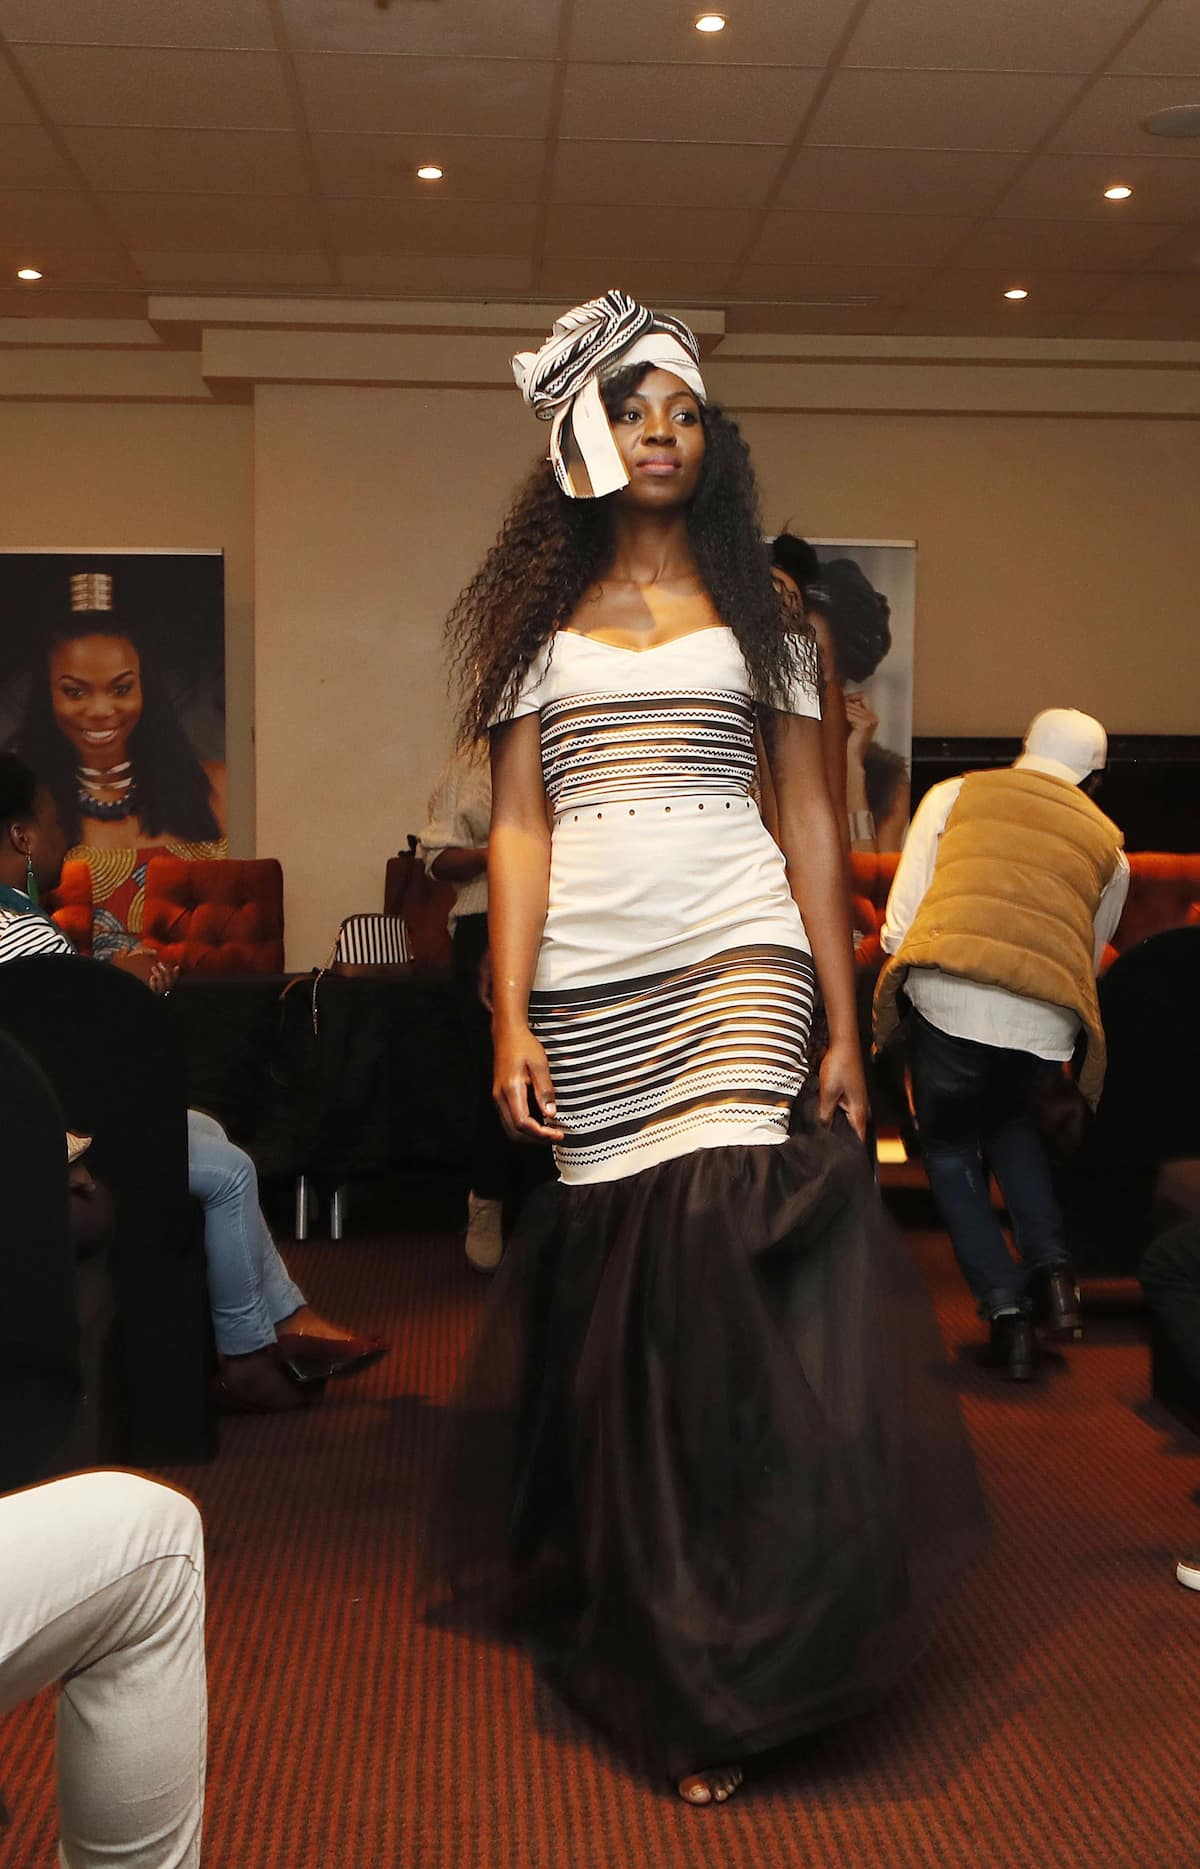 A model showcases one of the designs. Source: IOL/Simphiwe Mbokazi